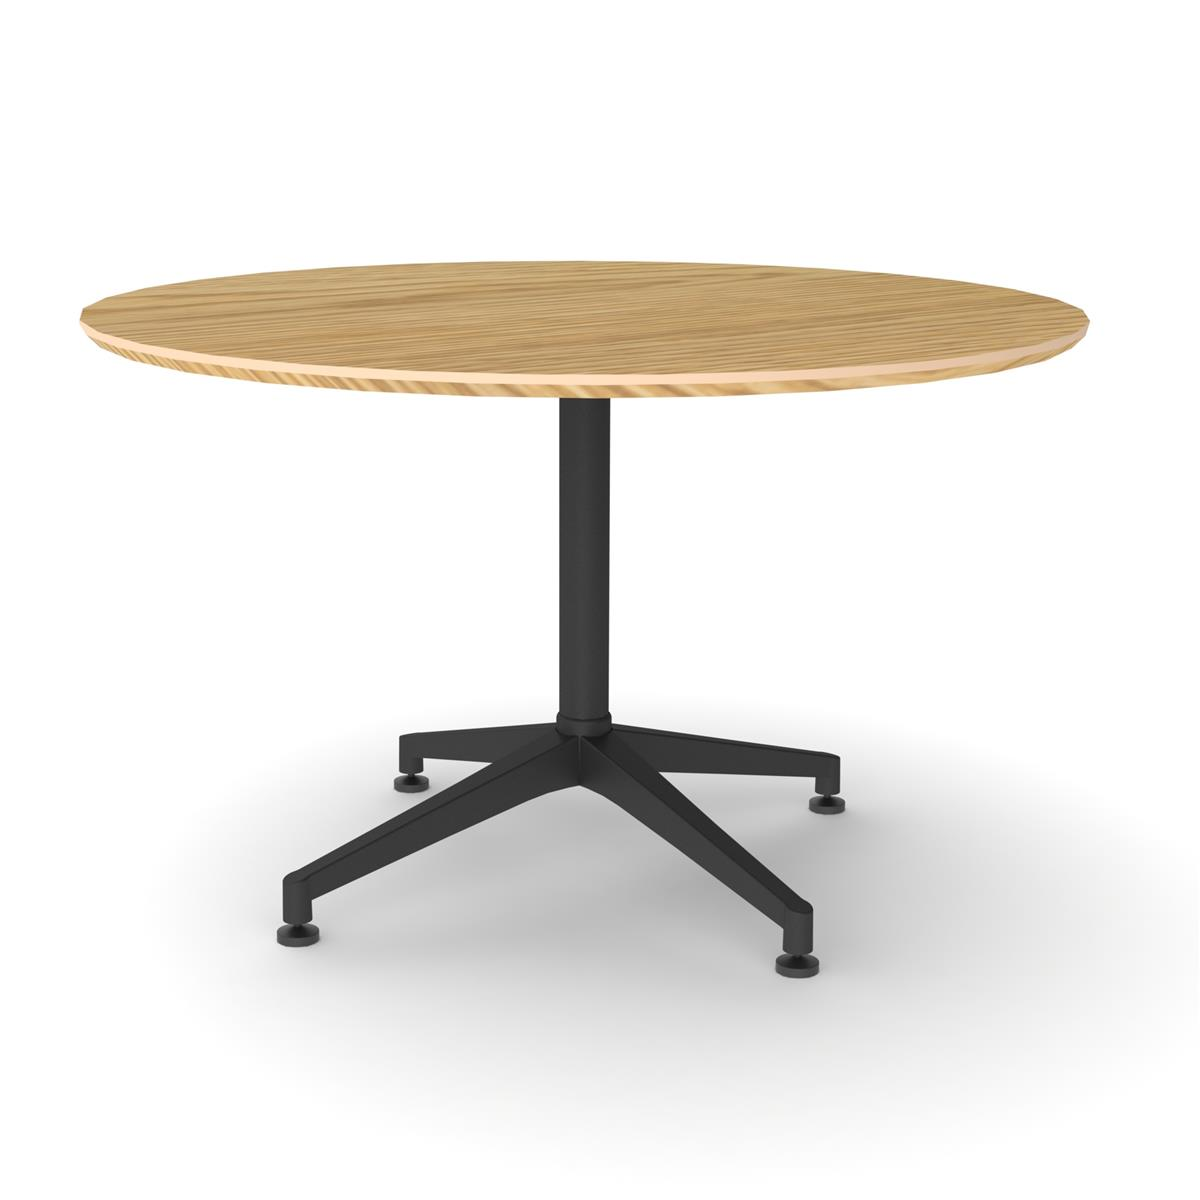 X1 Seamless Table Ø120 cm med eik finér & sort understell